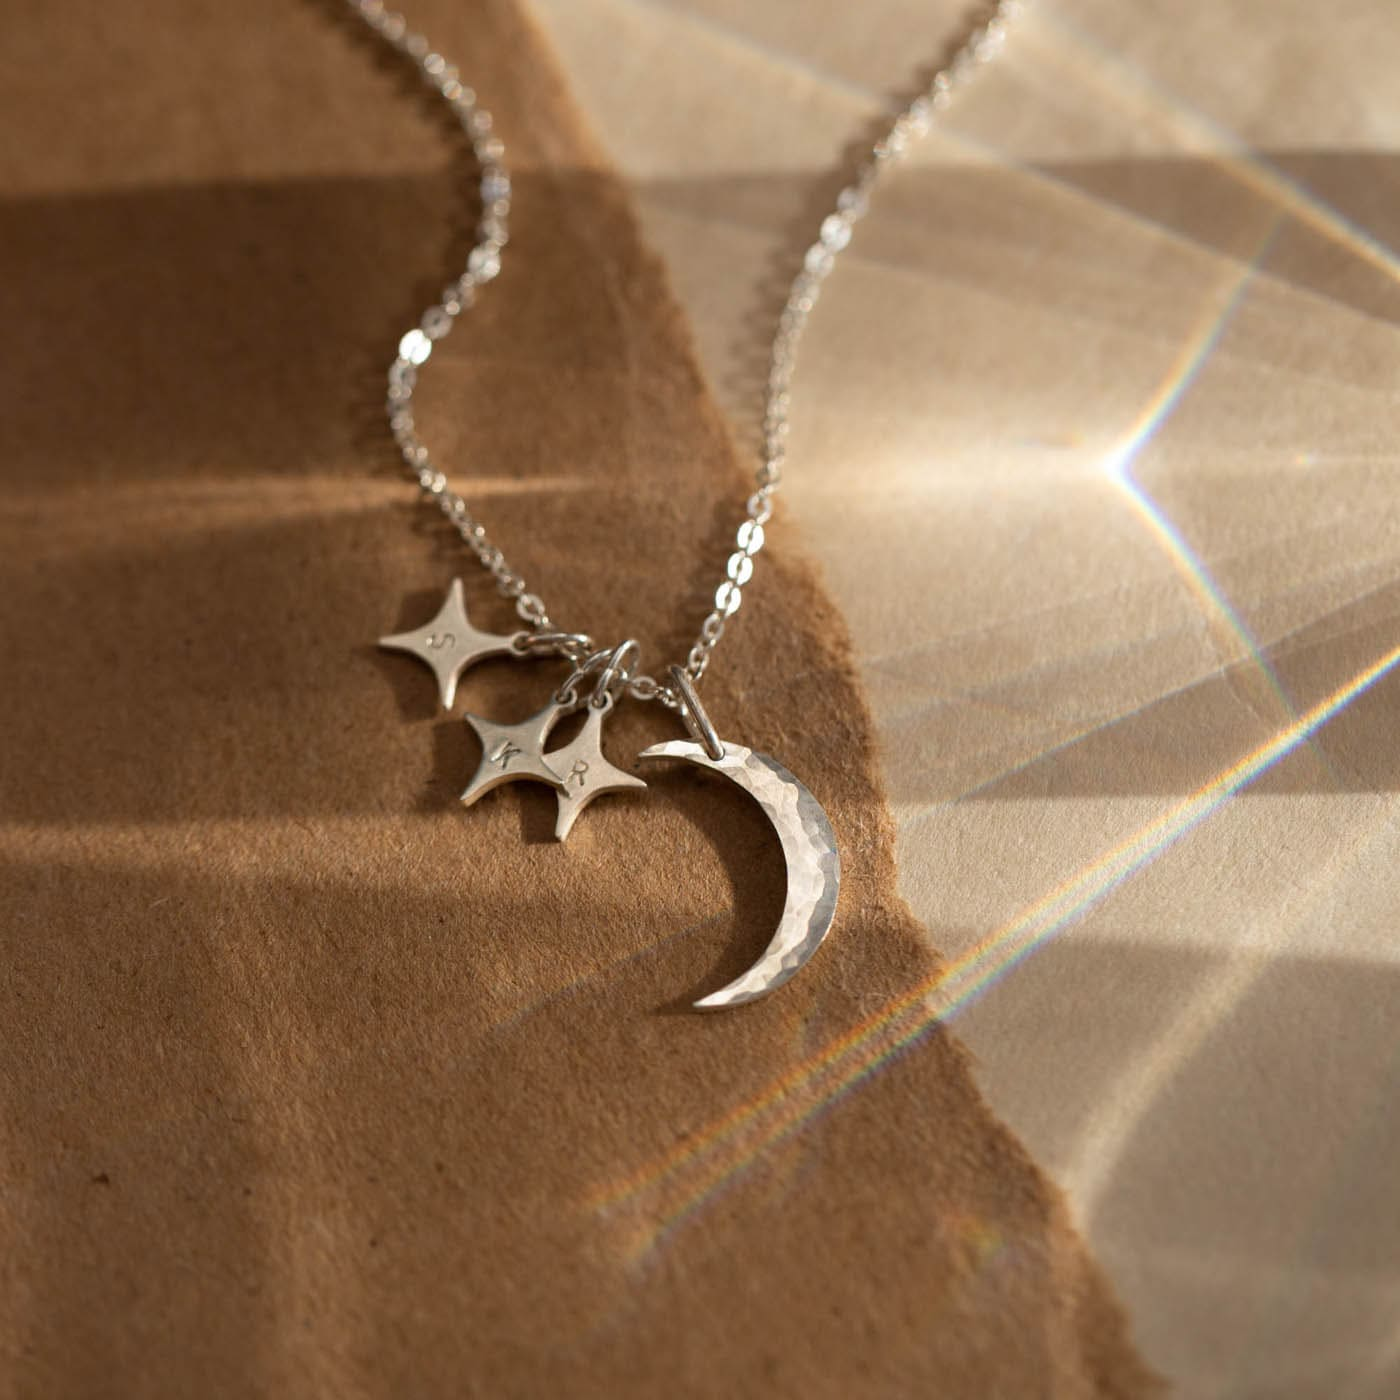 Necklace Ras of the Neck Long Golden Pendant Moon Star Leather Syt Simple 3 in 1